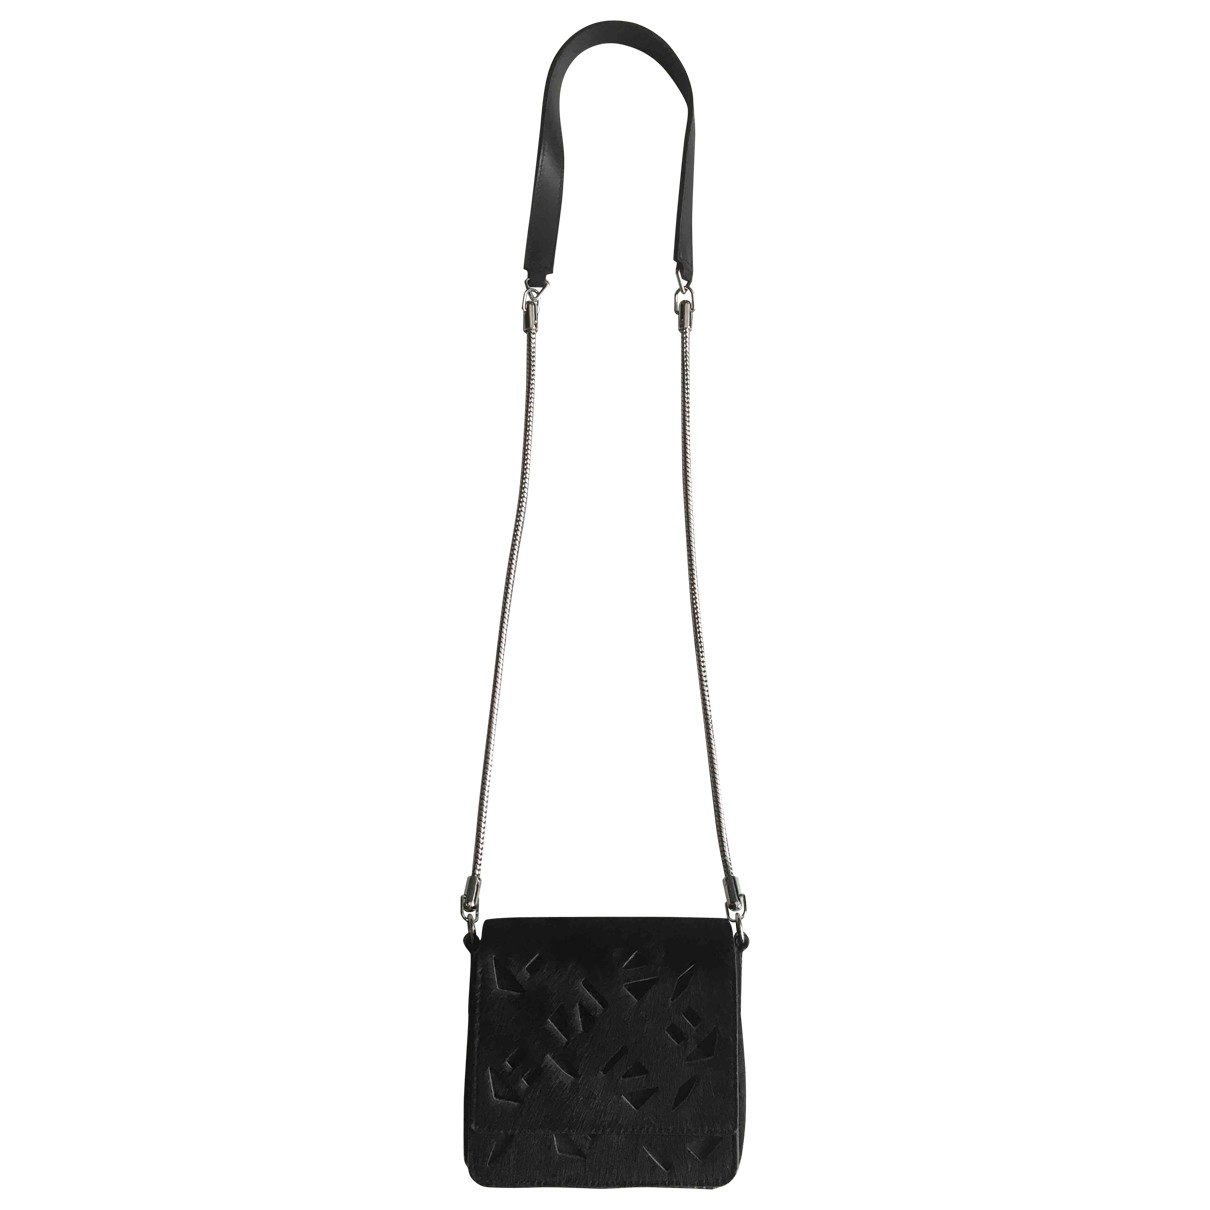 Kenzo \N Black Pony-style calfskin handbag for Women \N